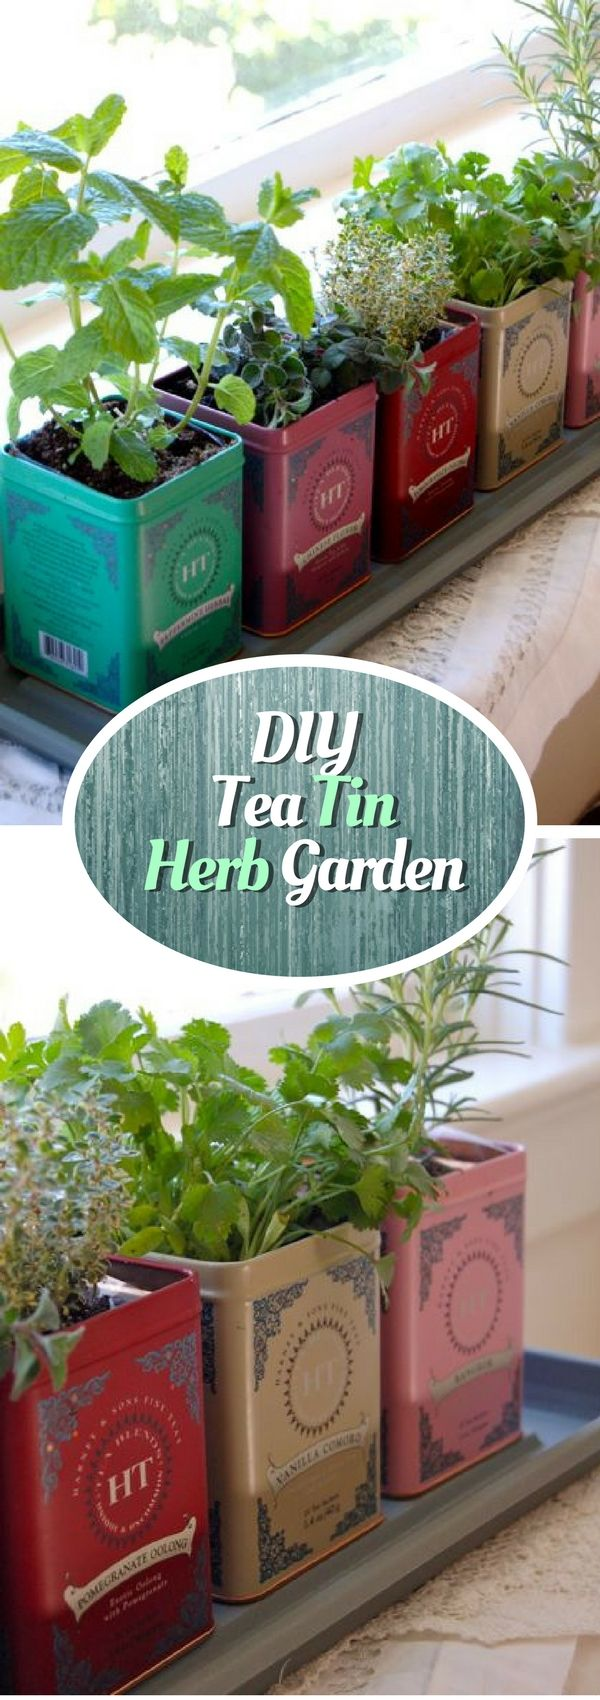 Best 25 Herb garden indoor ideas on Pinterest Indoor herbs